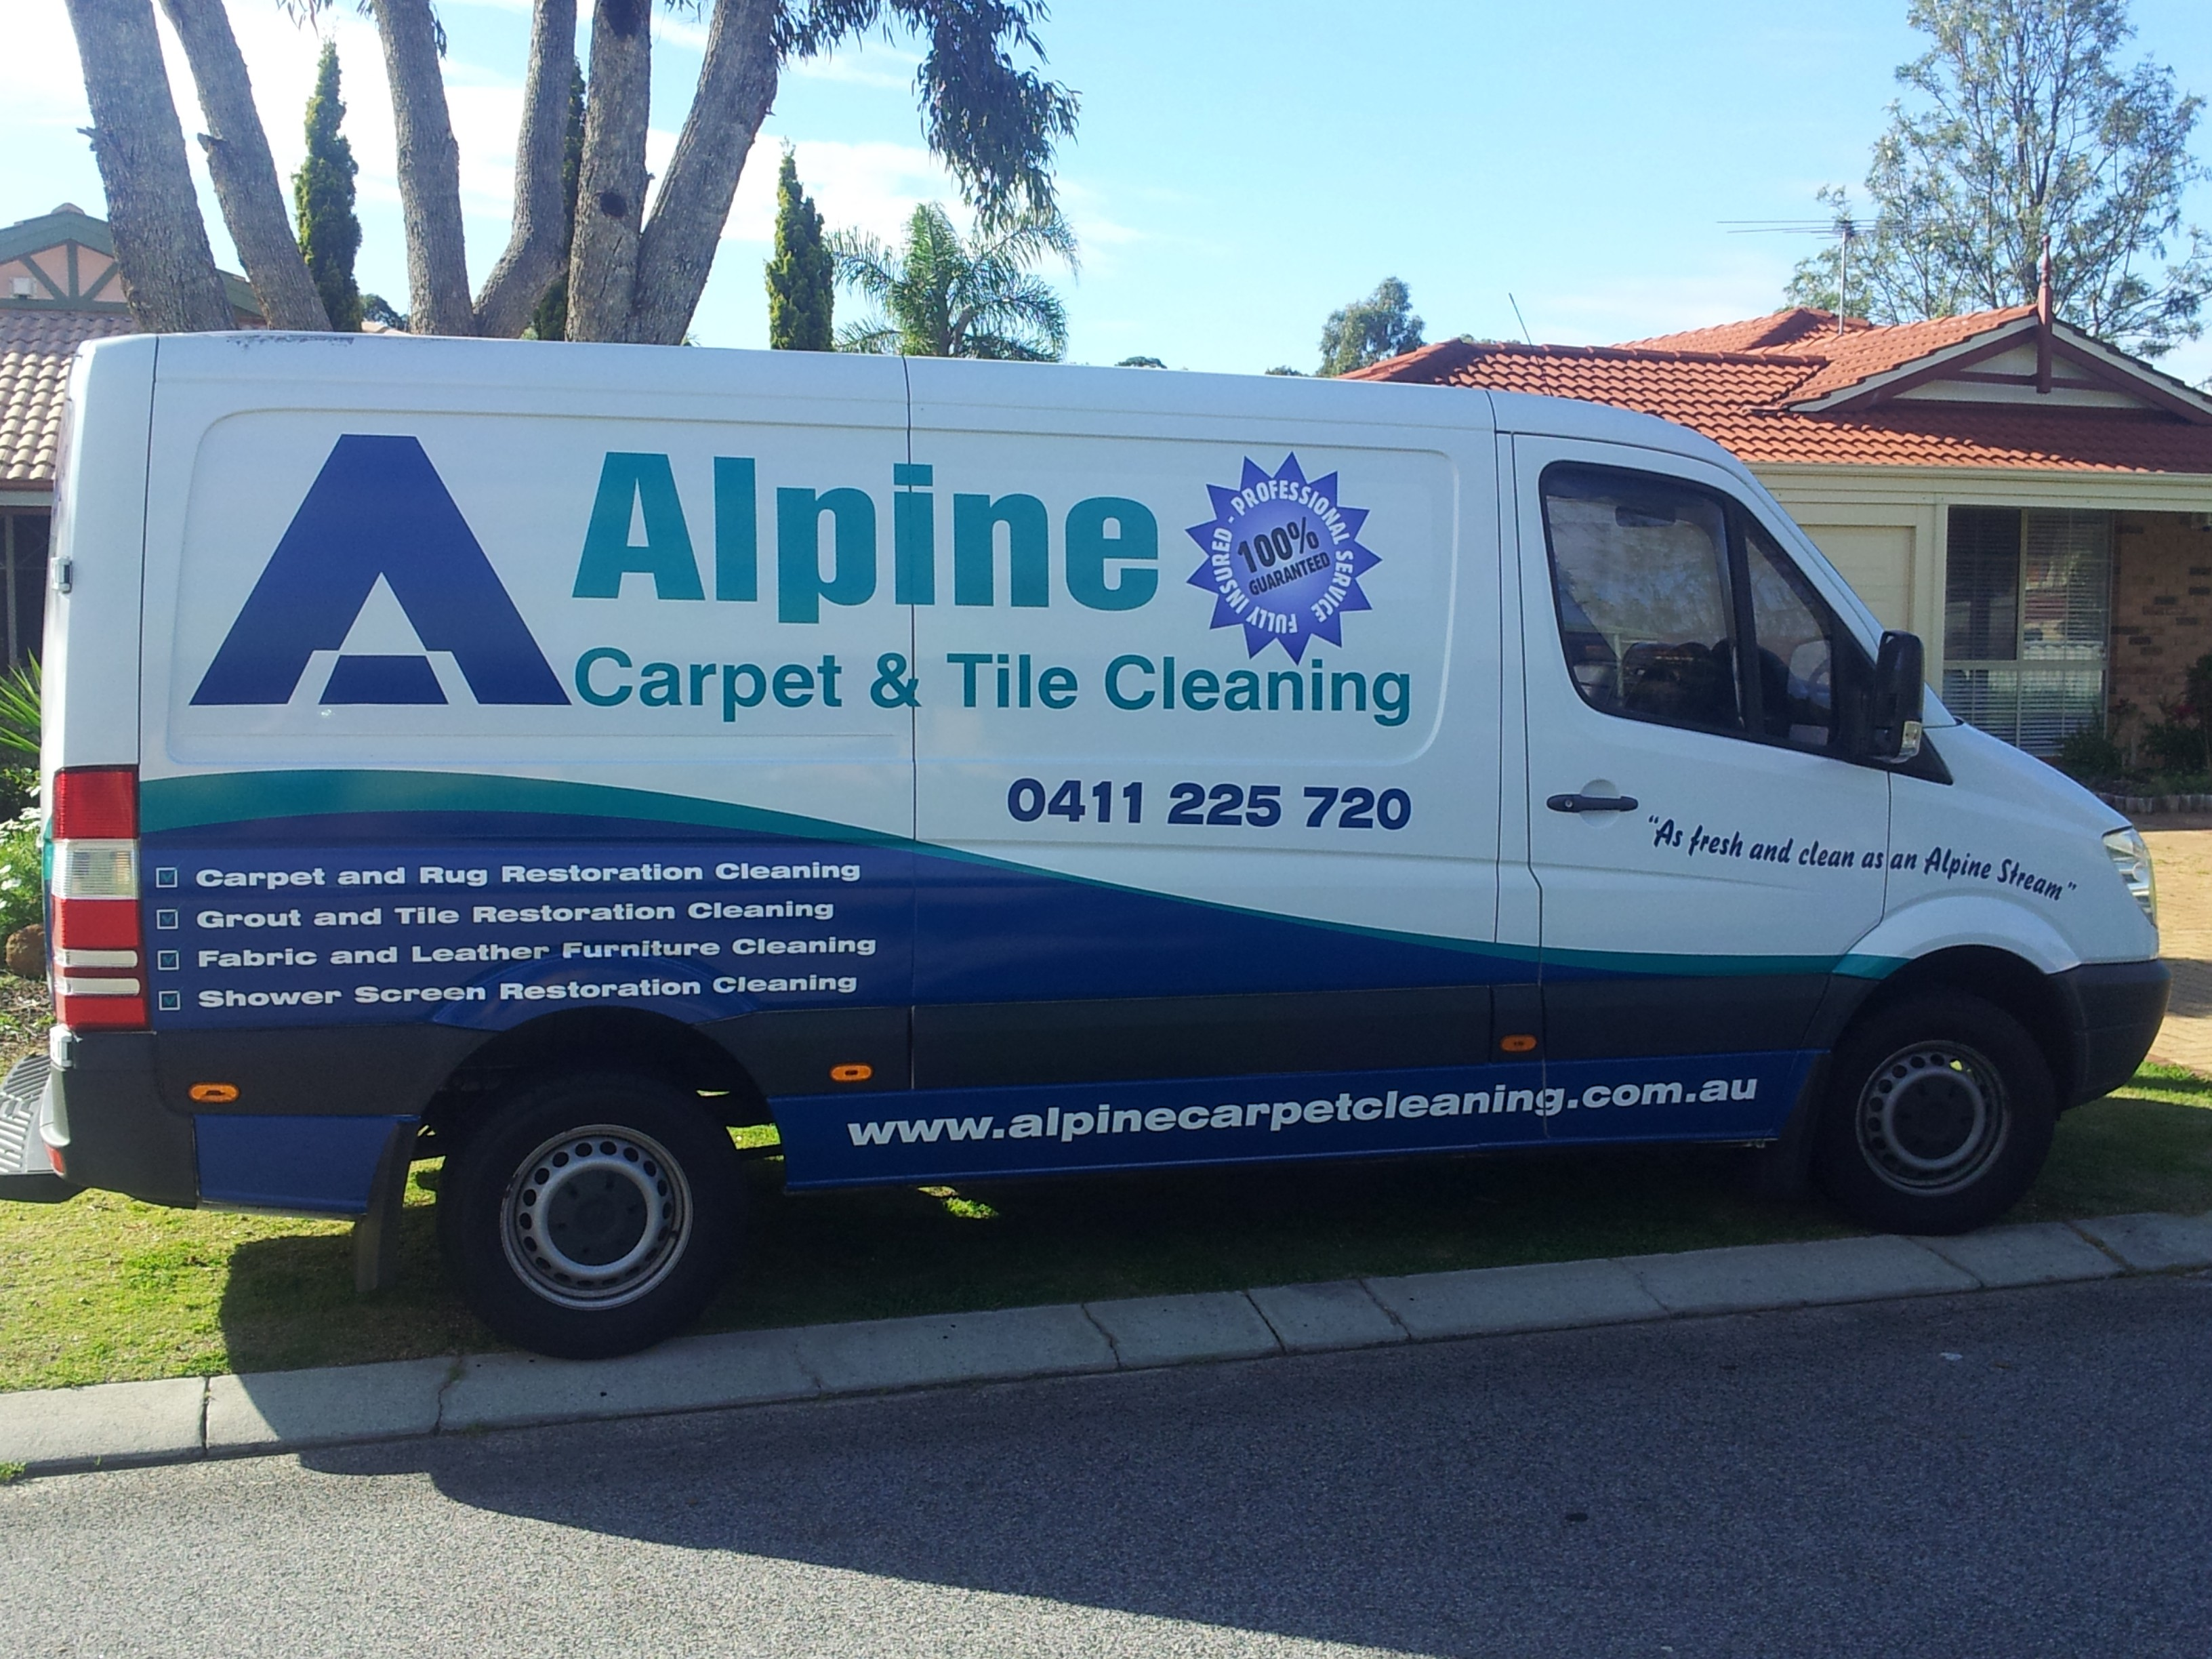 Alpine Carpet Cleaning Truck Joondalup Wanneroo